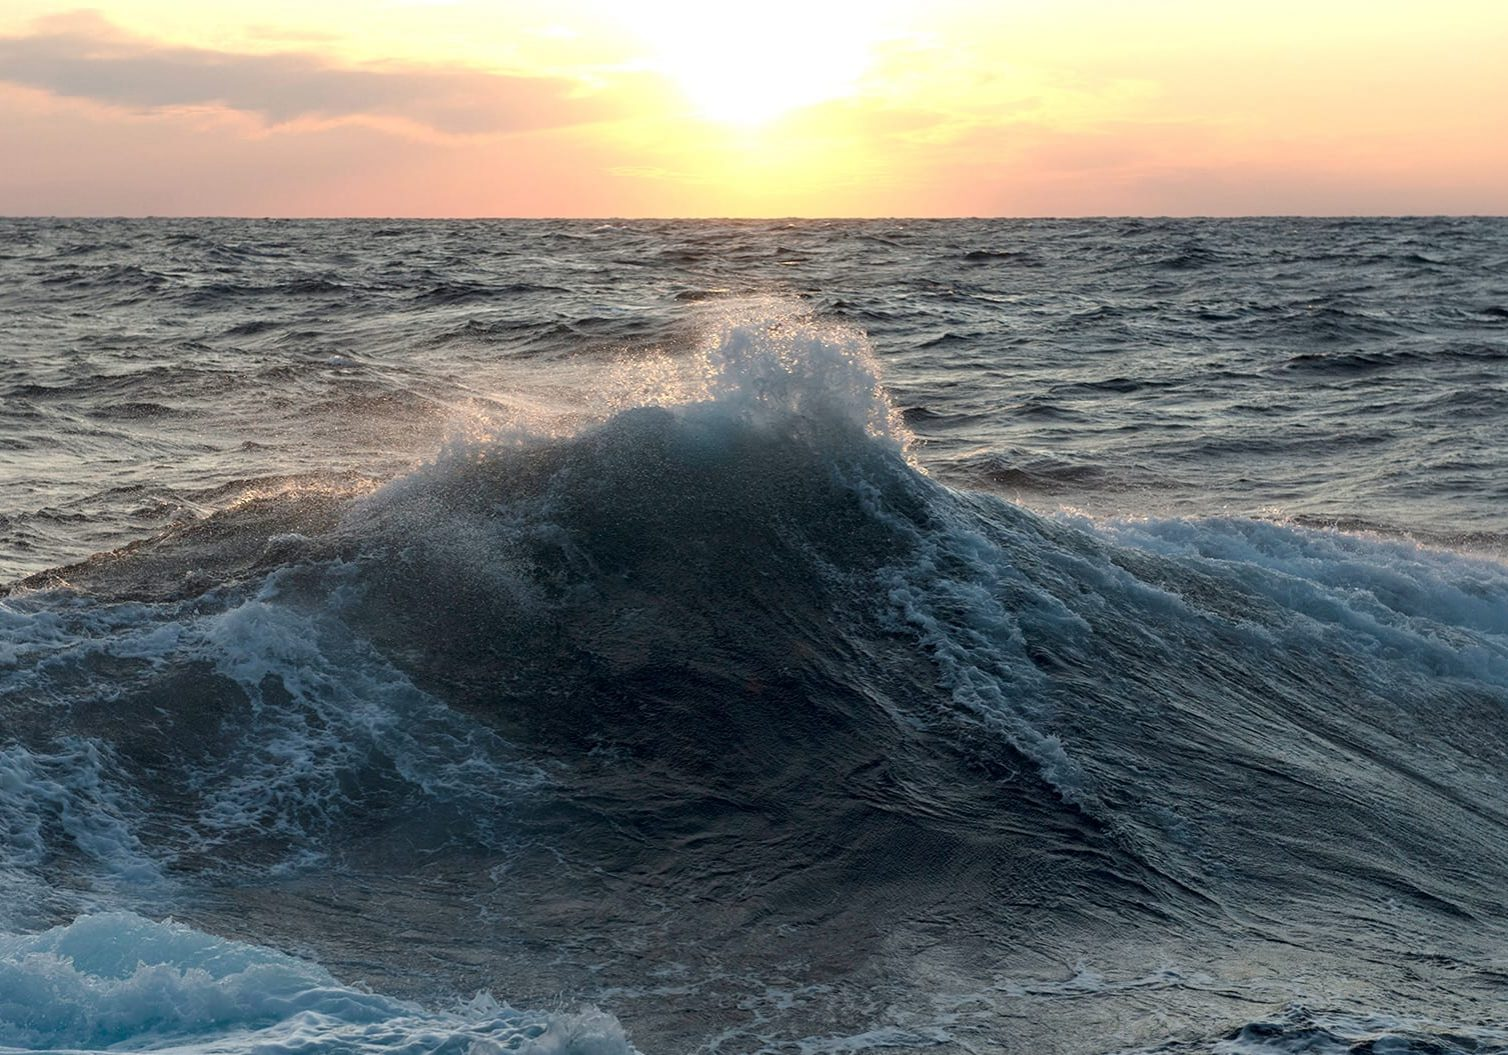 Surface waves forming in the Gulf of Mexico